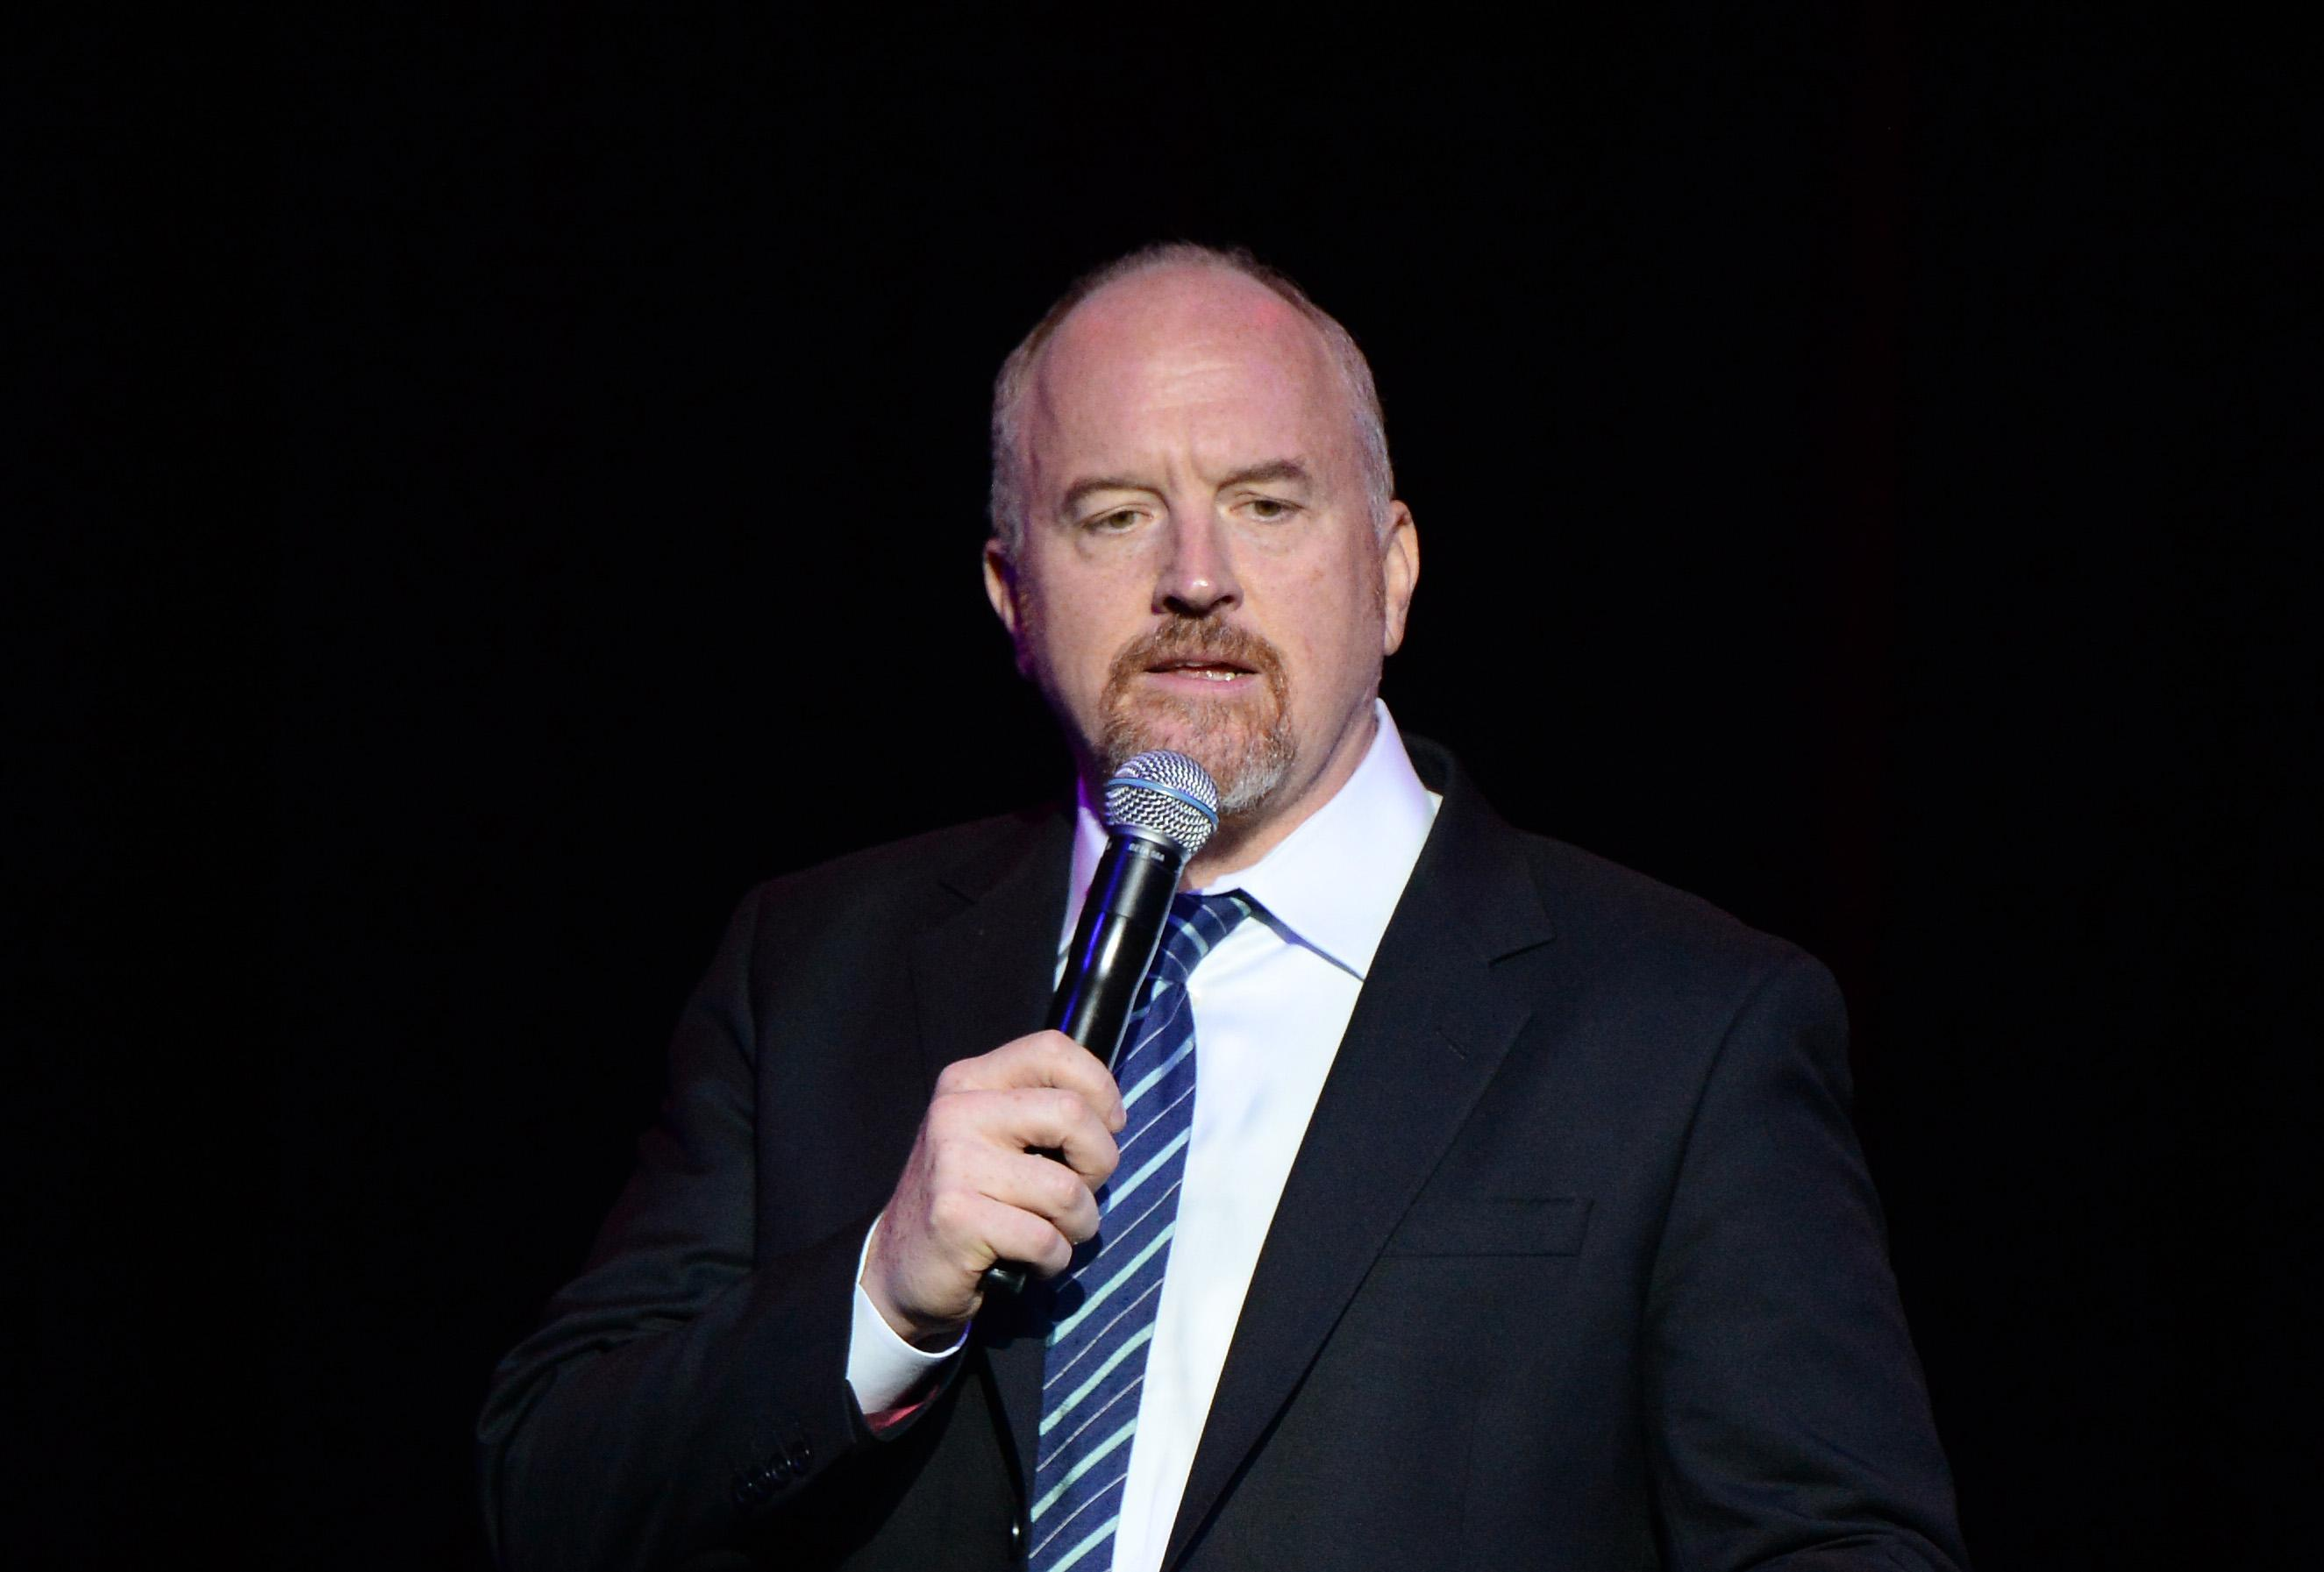 Tonight's NYC premiere of Louis CK's new movie has been cancelled